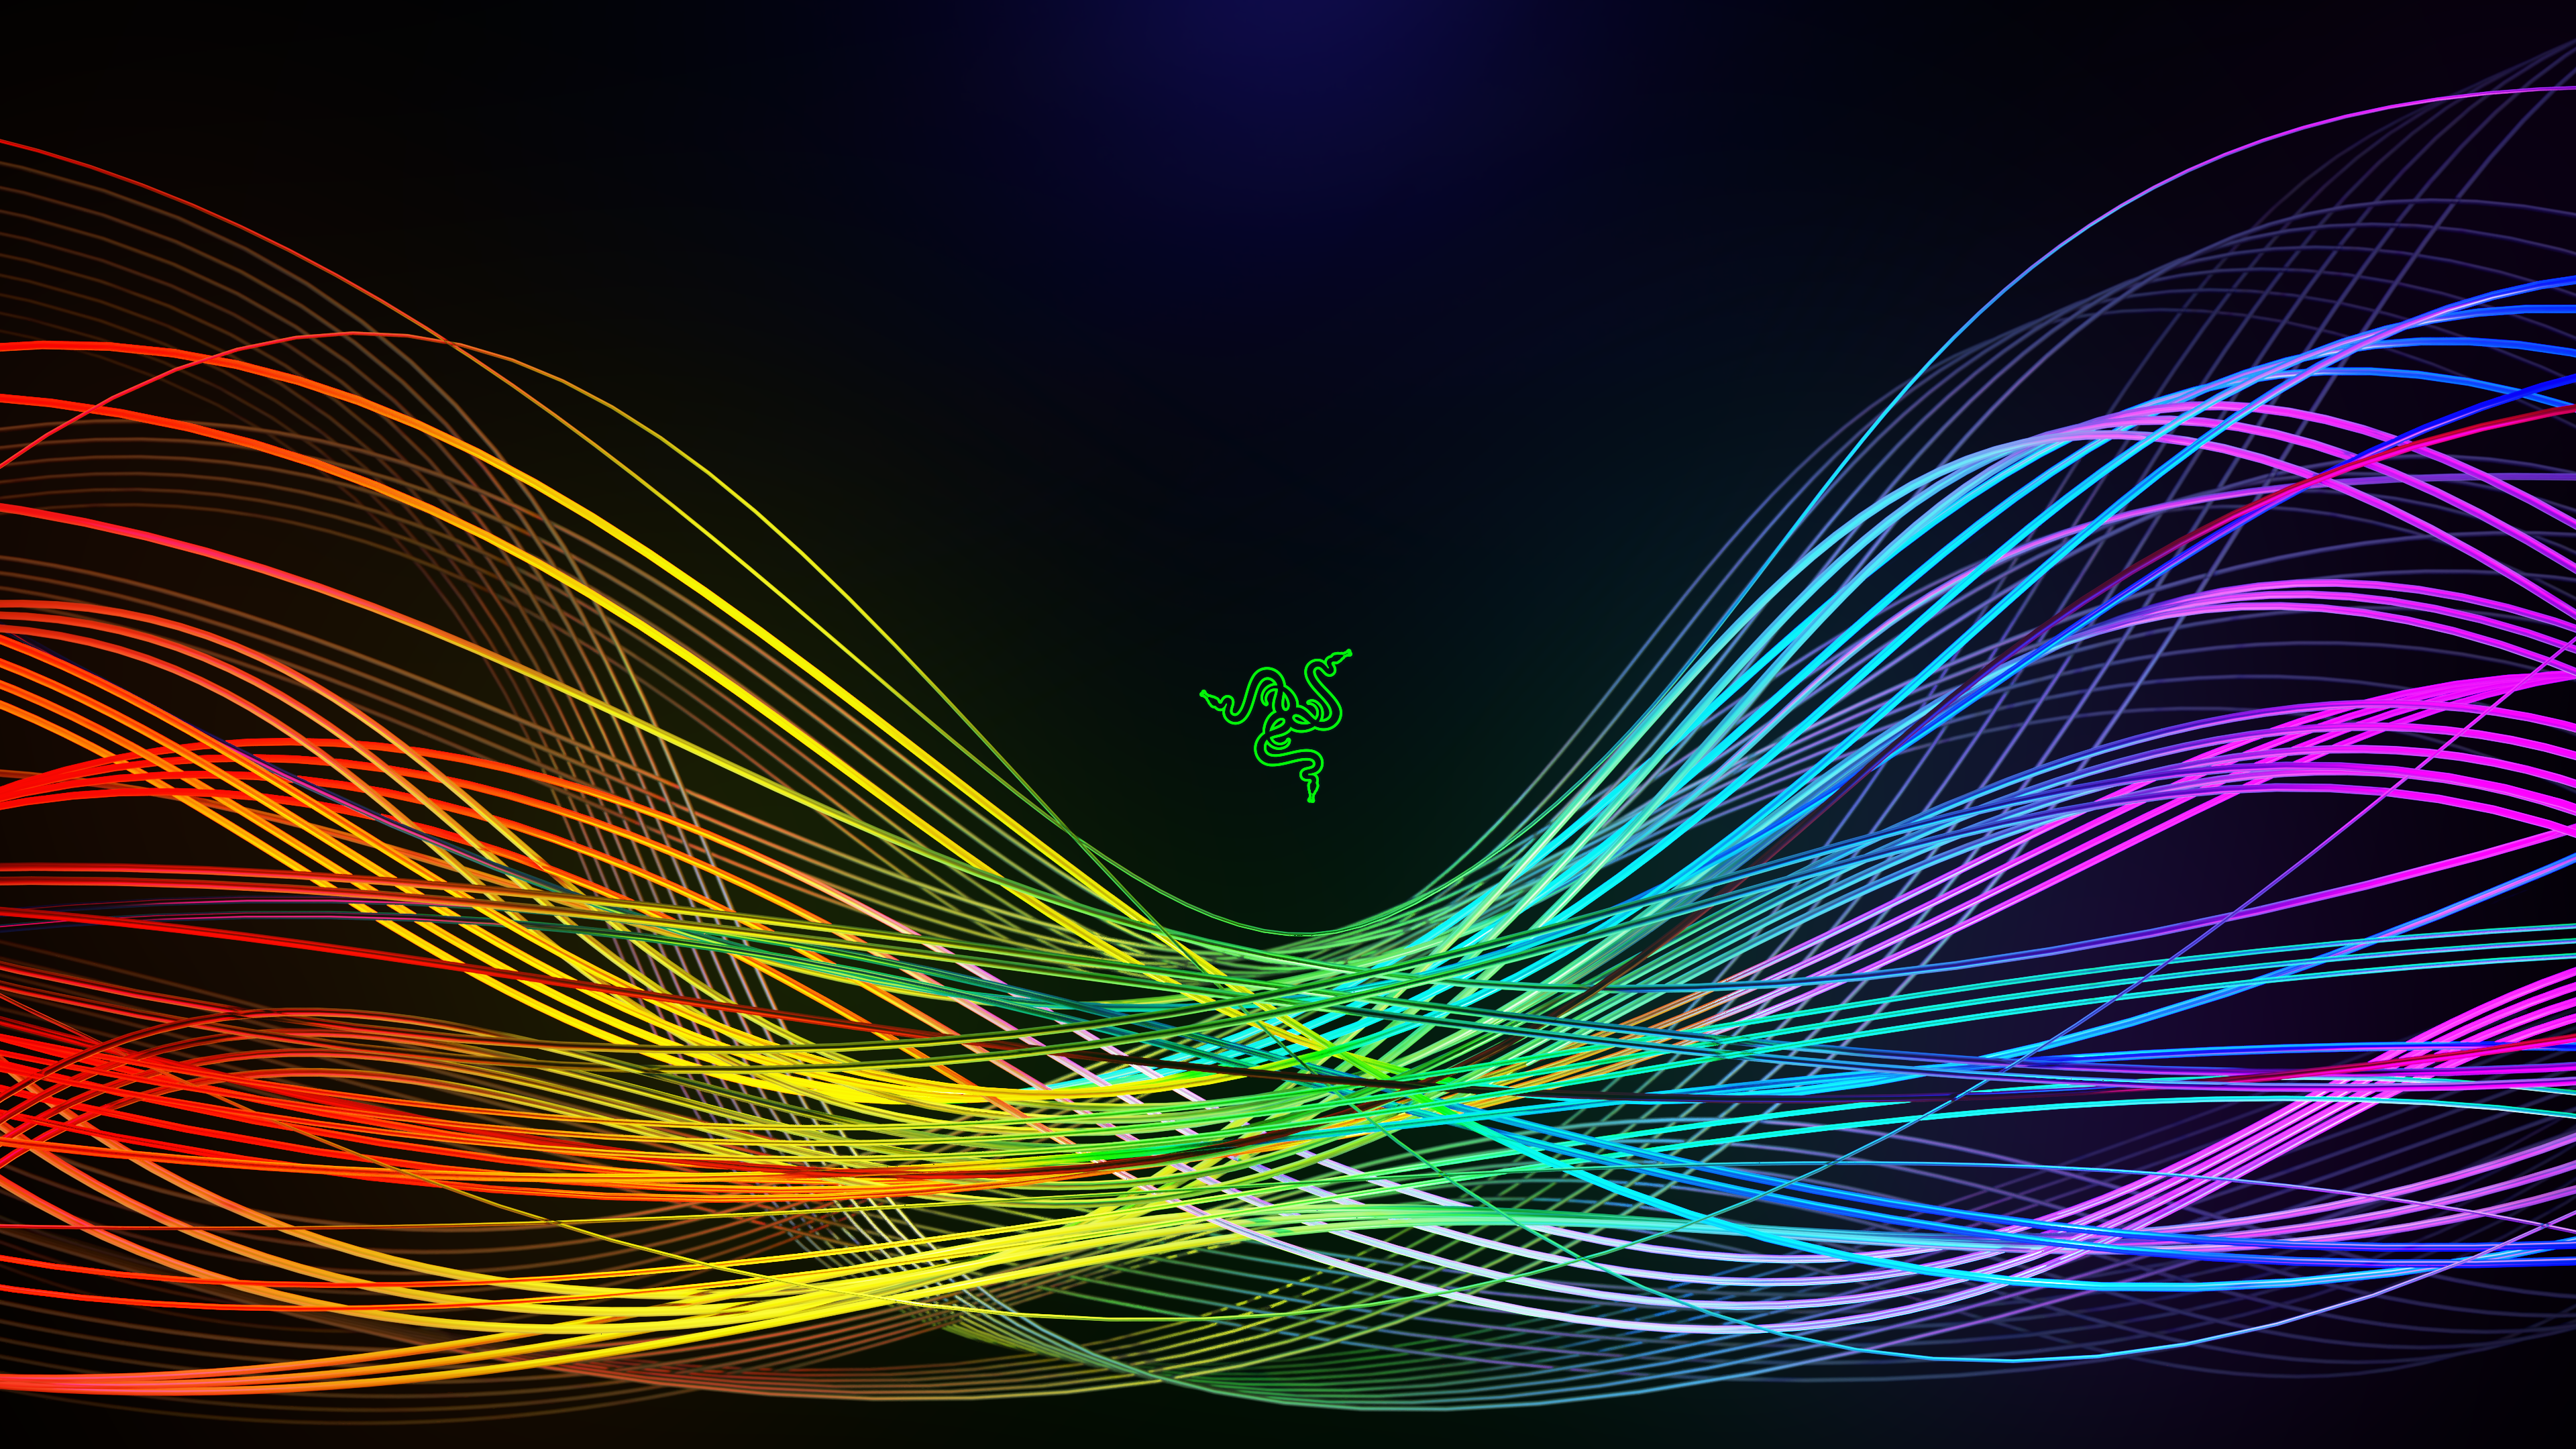 Razer 4k Ultra Hd Wallpaper Razer Background 2858512 Hd Wallpaper Backgrounds Download